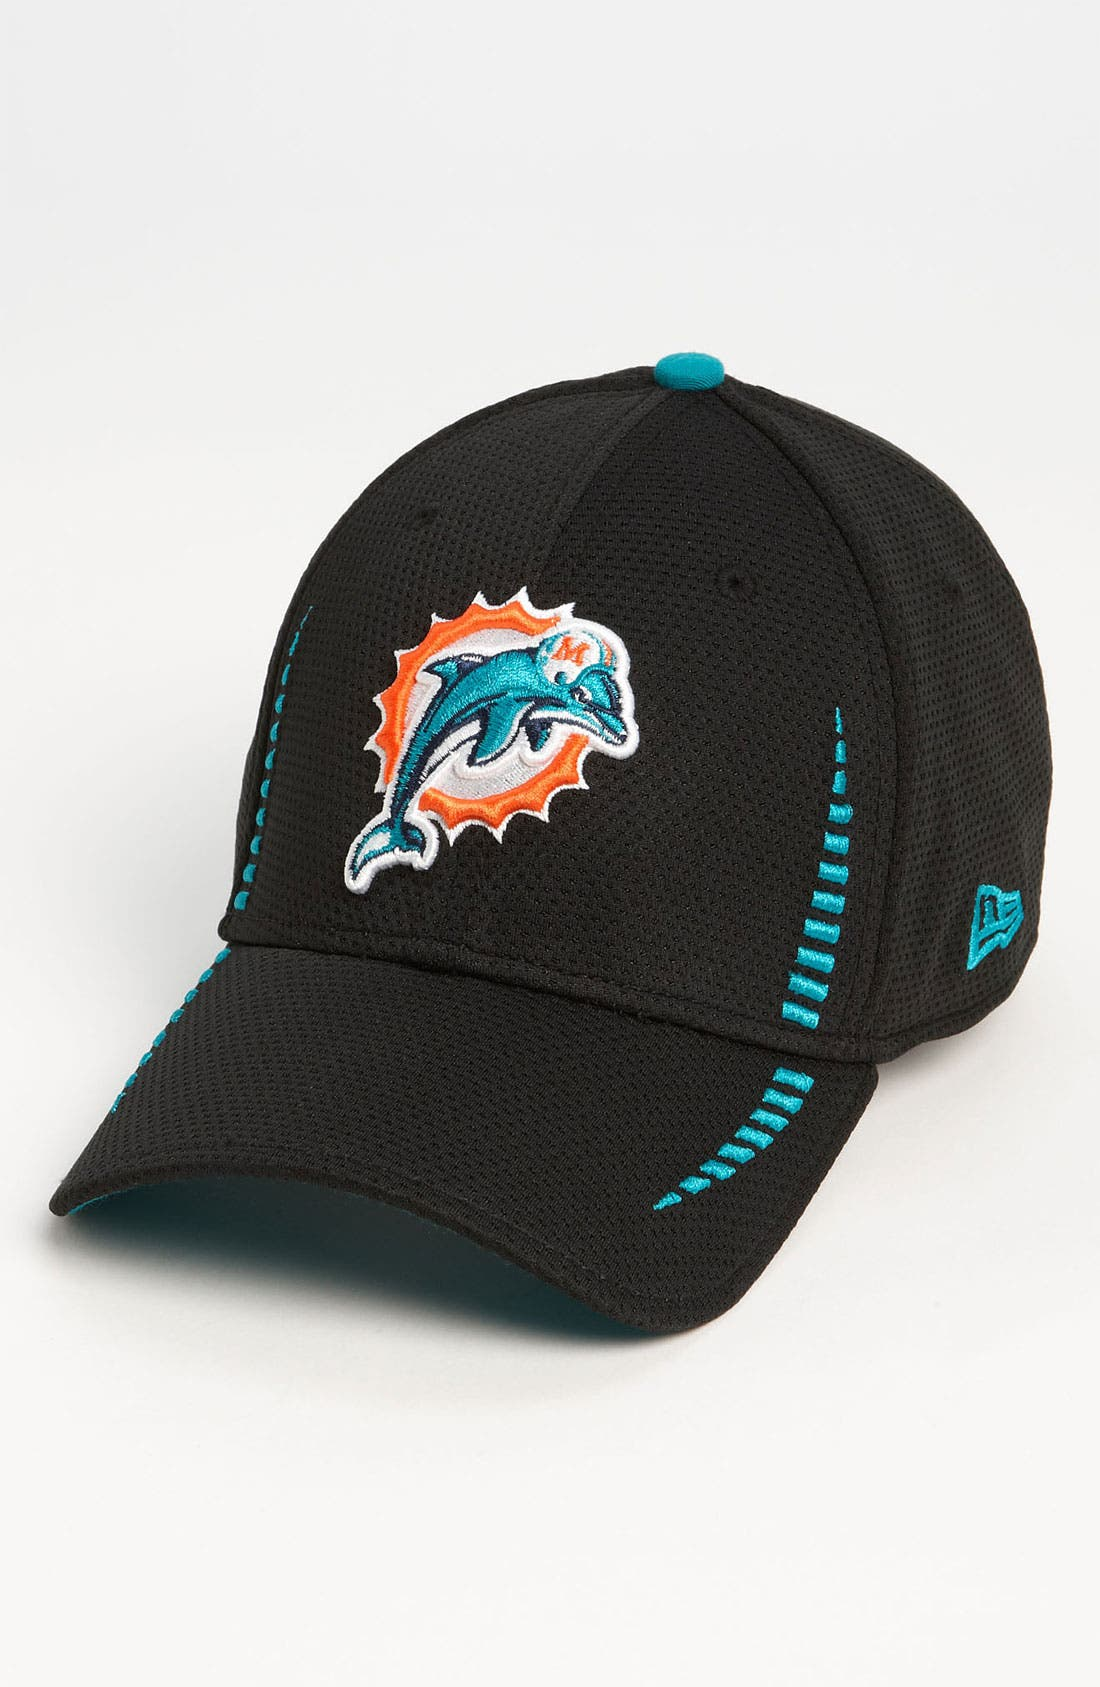 Alternate Image 1 Selected - New Era Cap 'Training Camp - Miami Dolphins' Baseball Cap